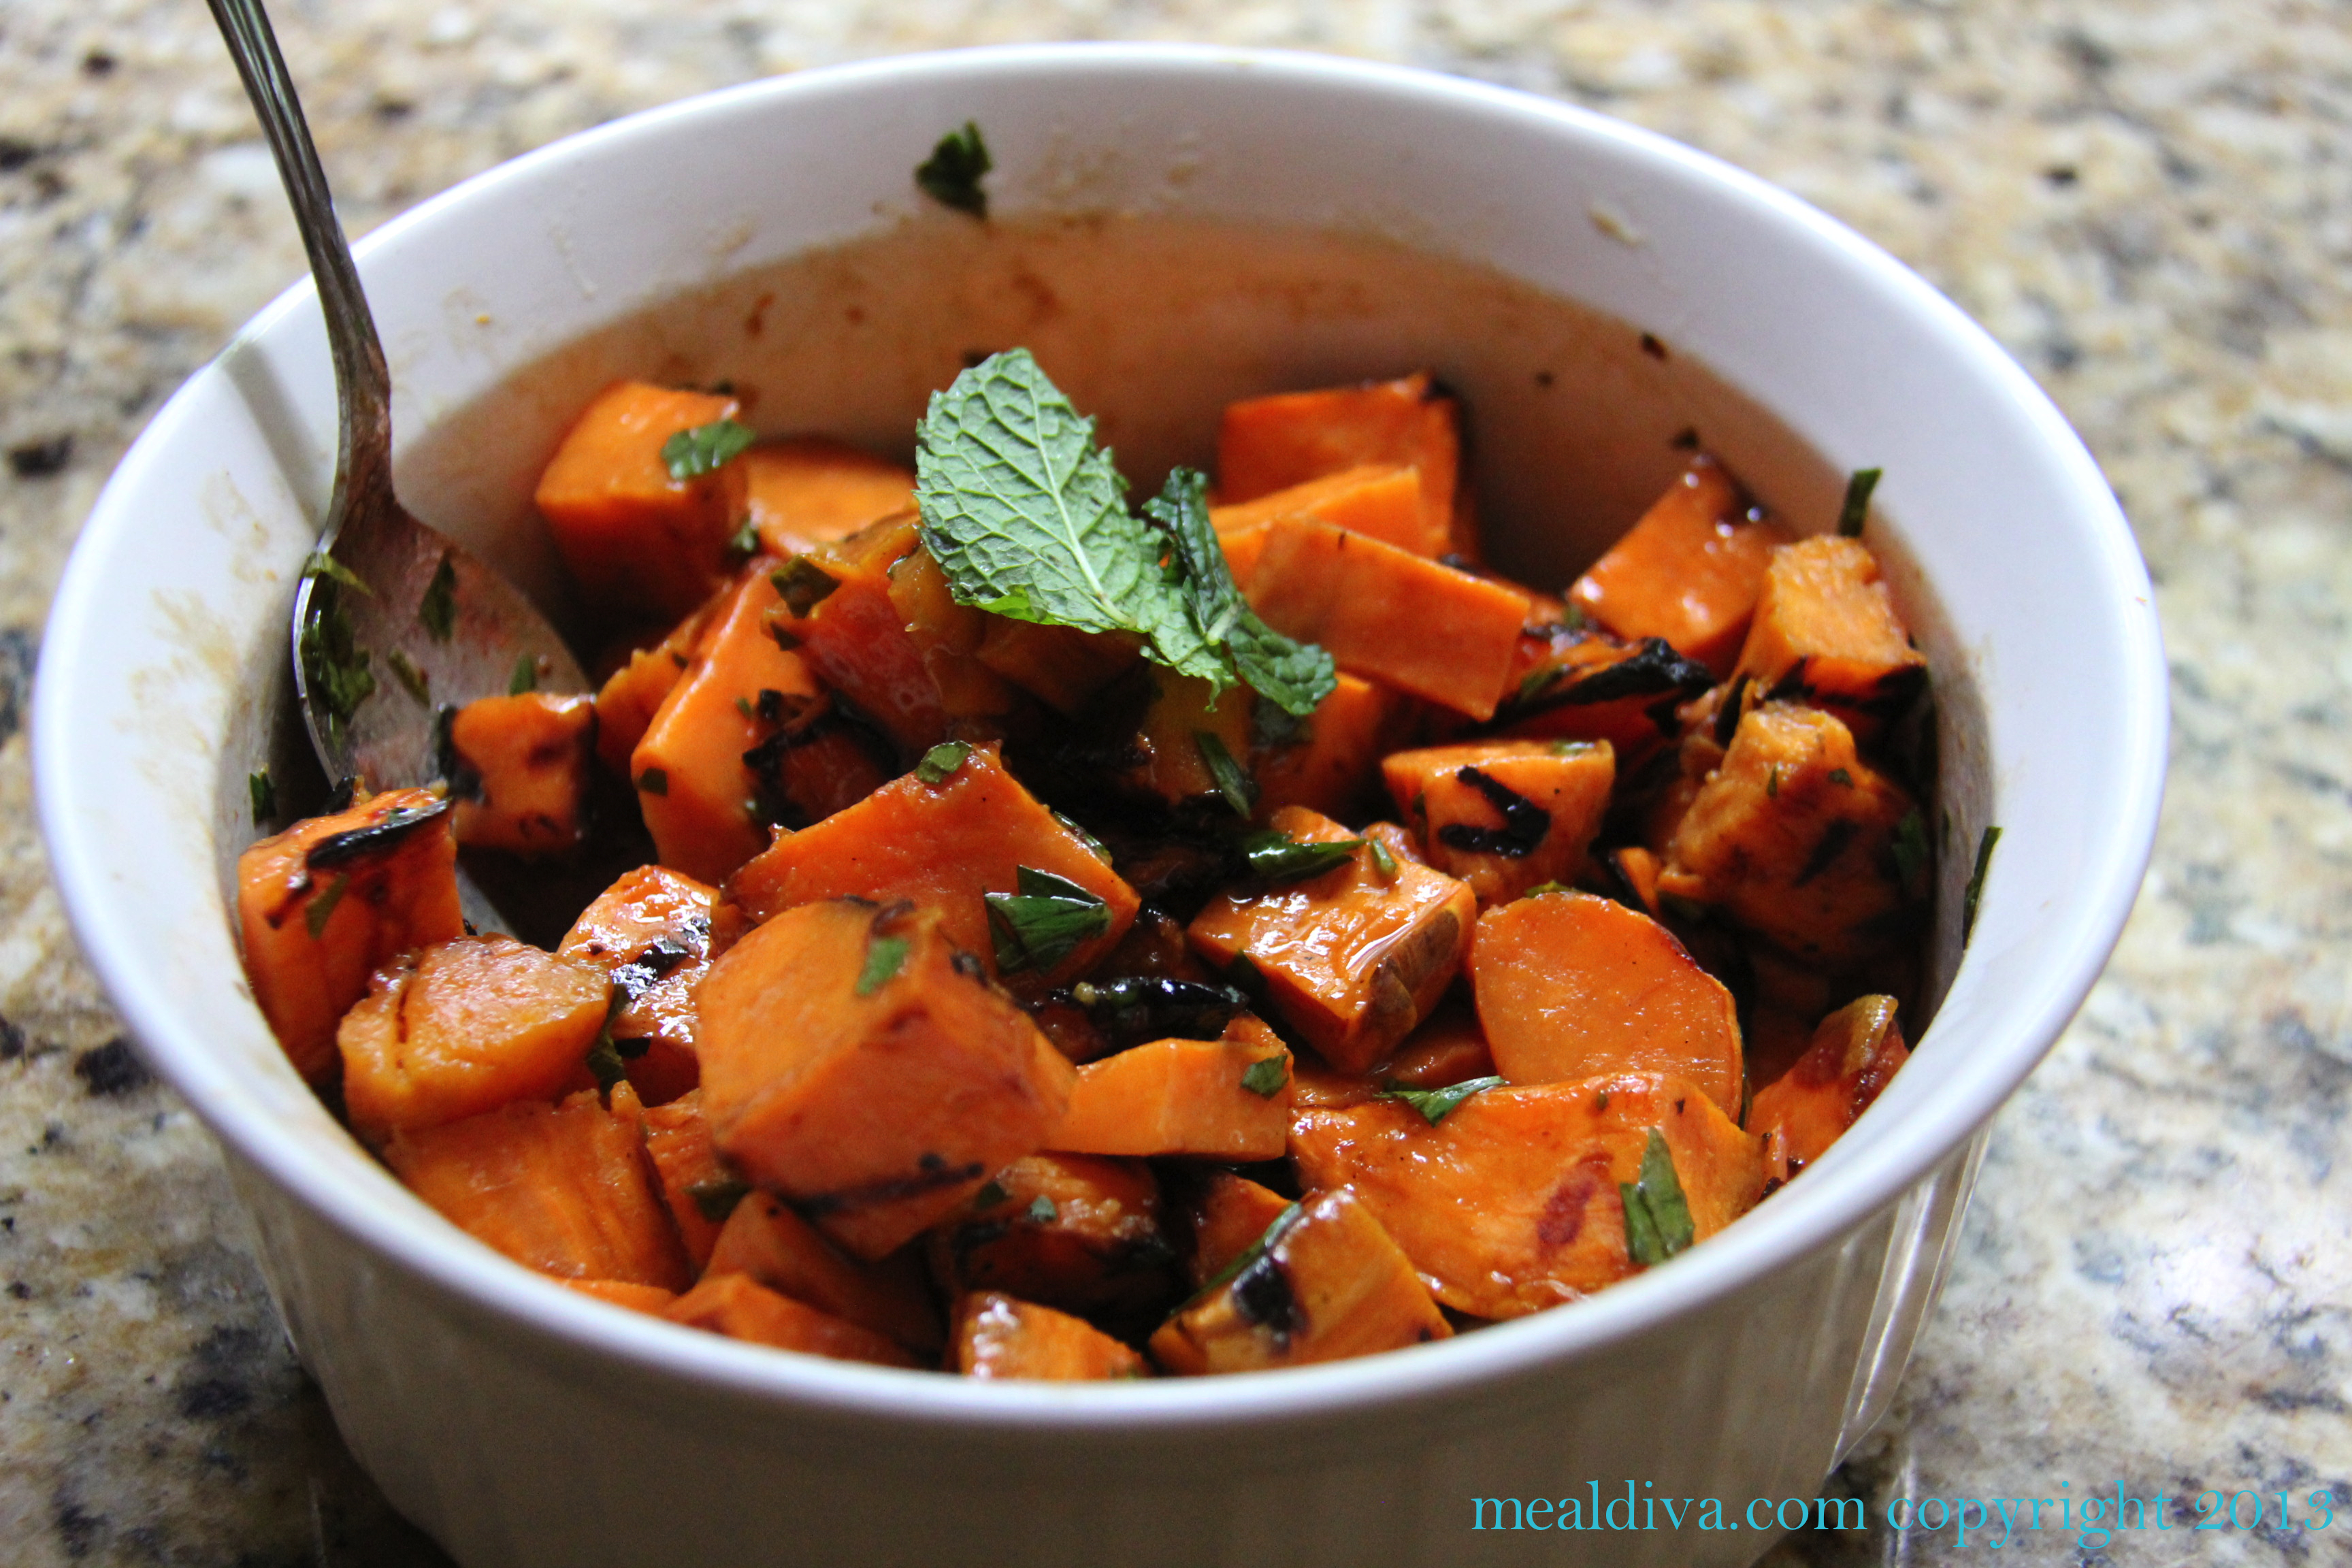 Grilled Sweet Potato Salad